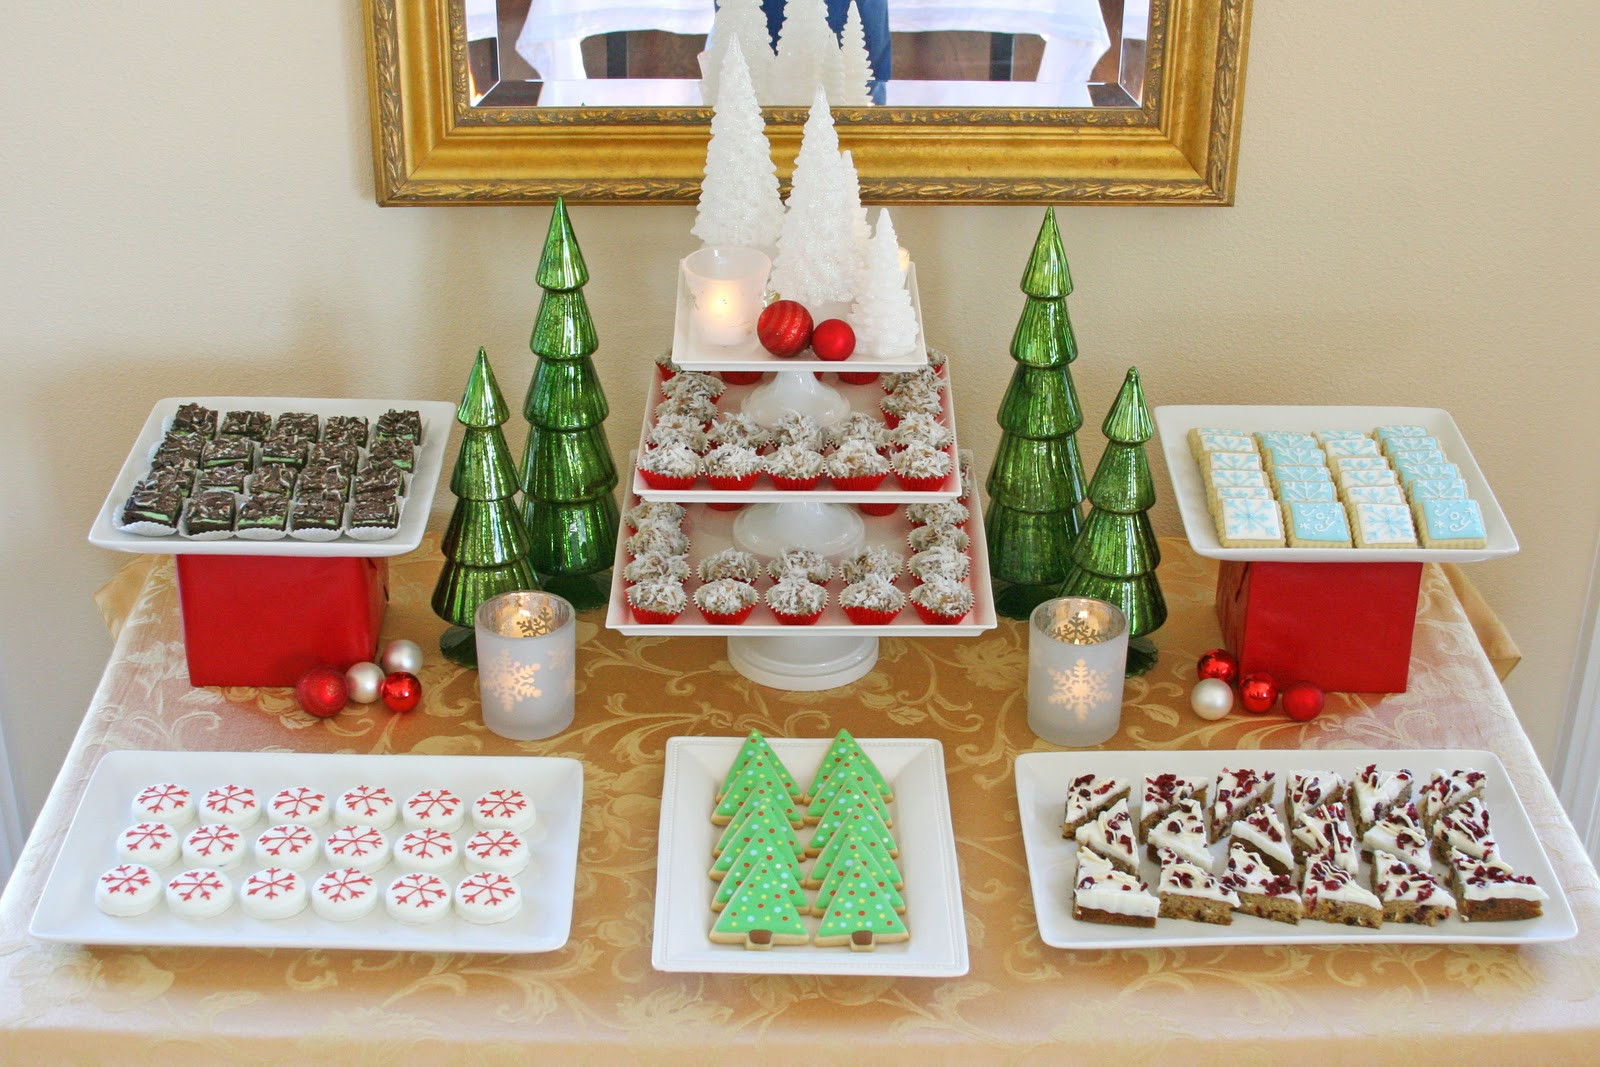 Christmas Dessert Ideas For Parties  Classic Holiday Dessert Table Glorious Treats